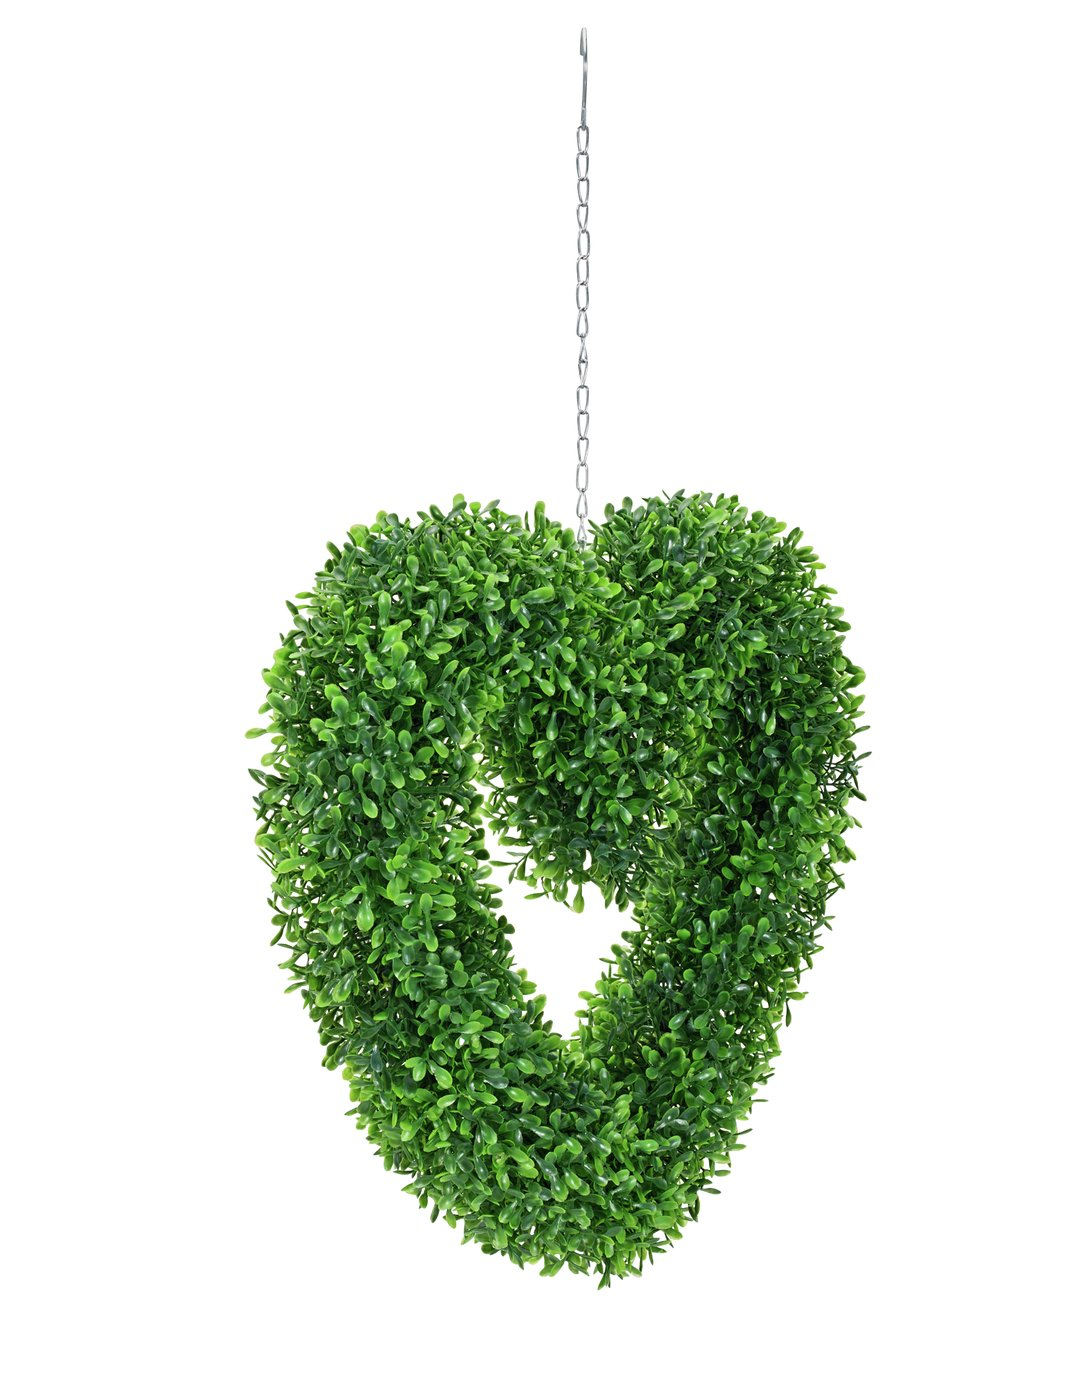 Artifical Grass Garden Hanging Heart